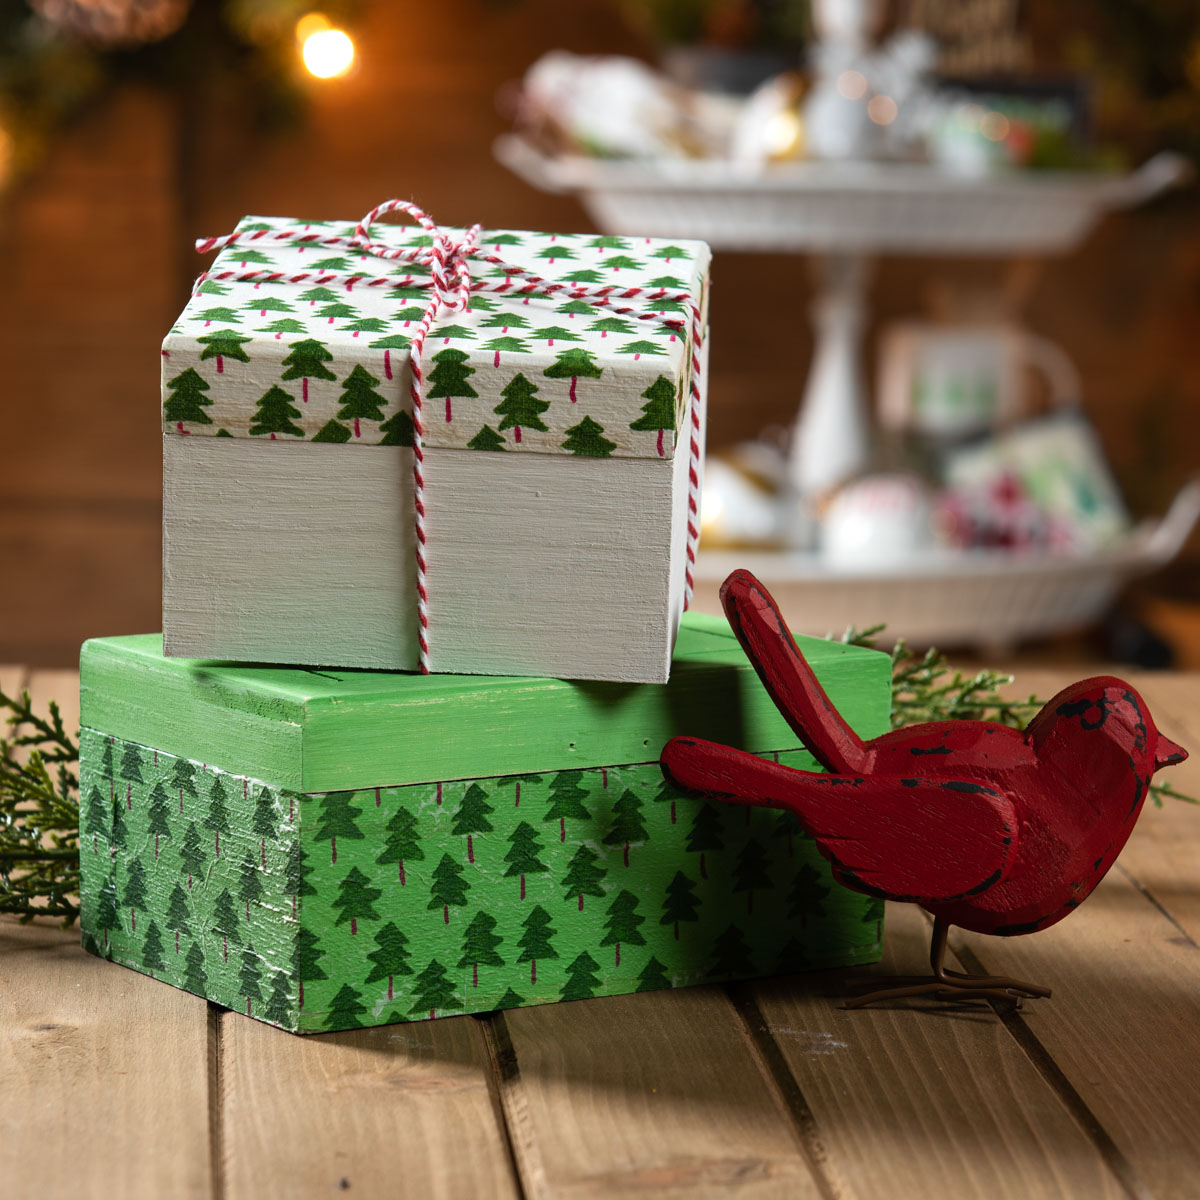 Holiday Tier Centerpiece - Napkin Decoupage Gift Boxes